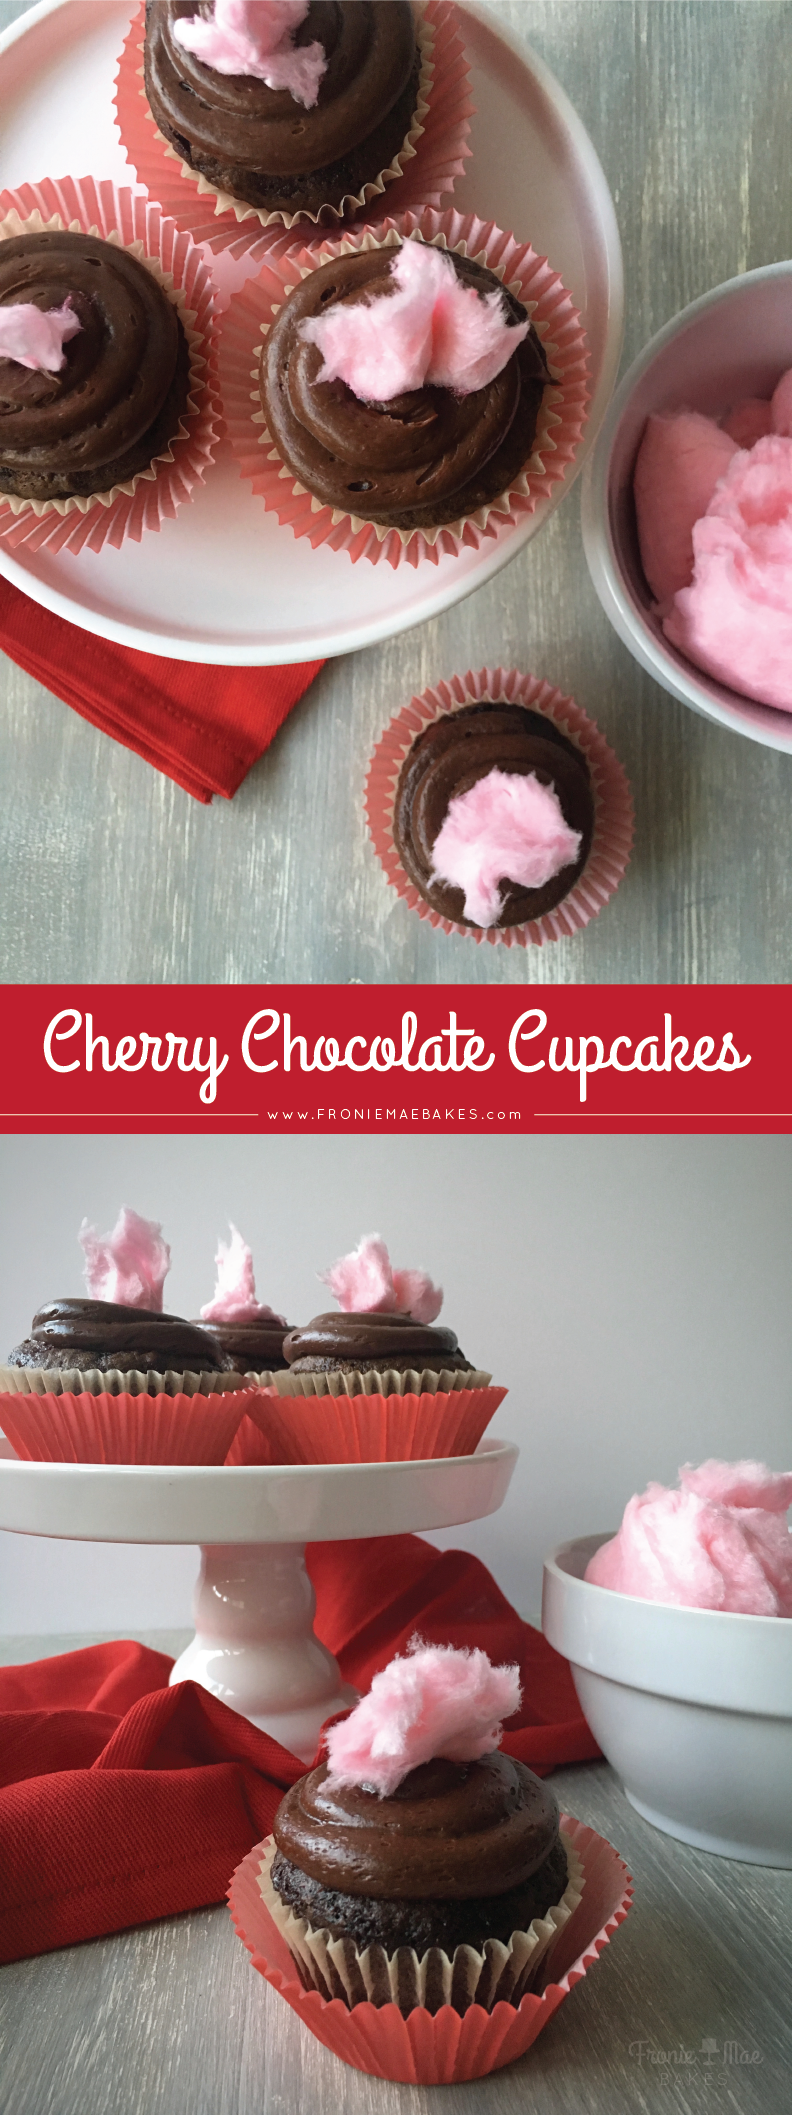 Simple Cherry Chocolate Cupcake Recipe by Fronie Mae Bakes. www.froniemaebakes.com